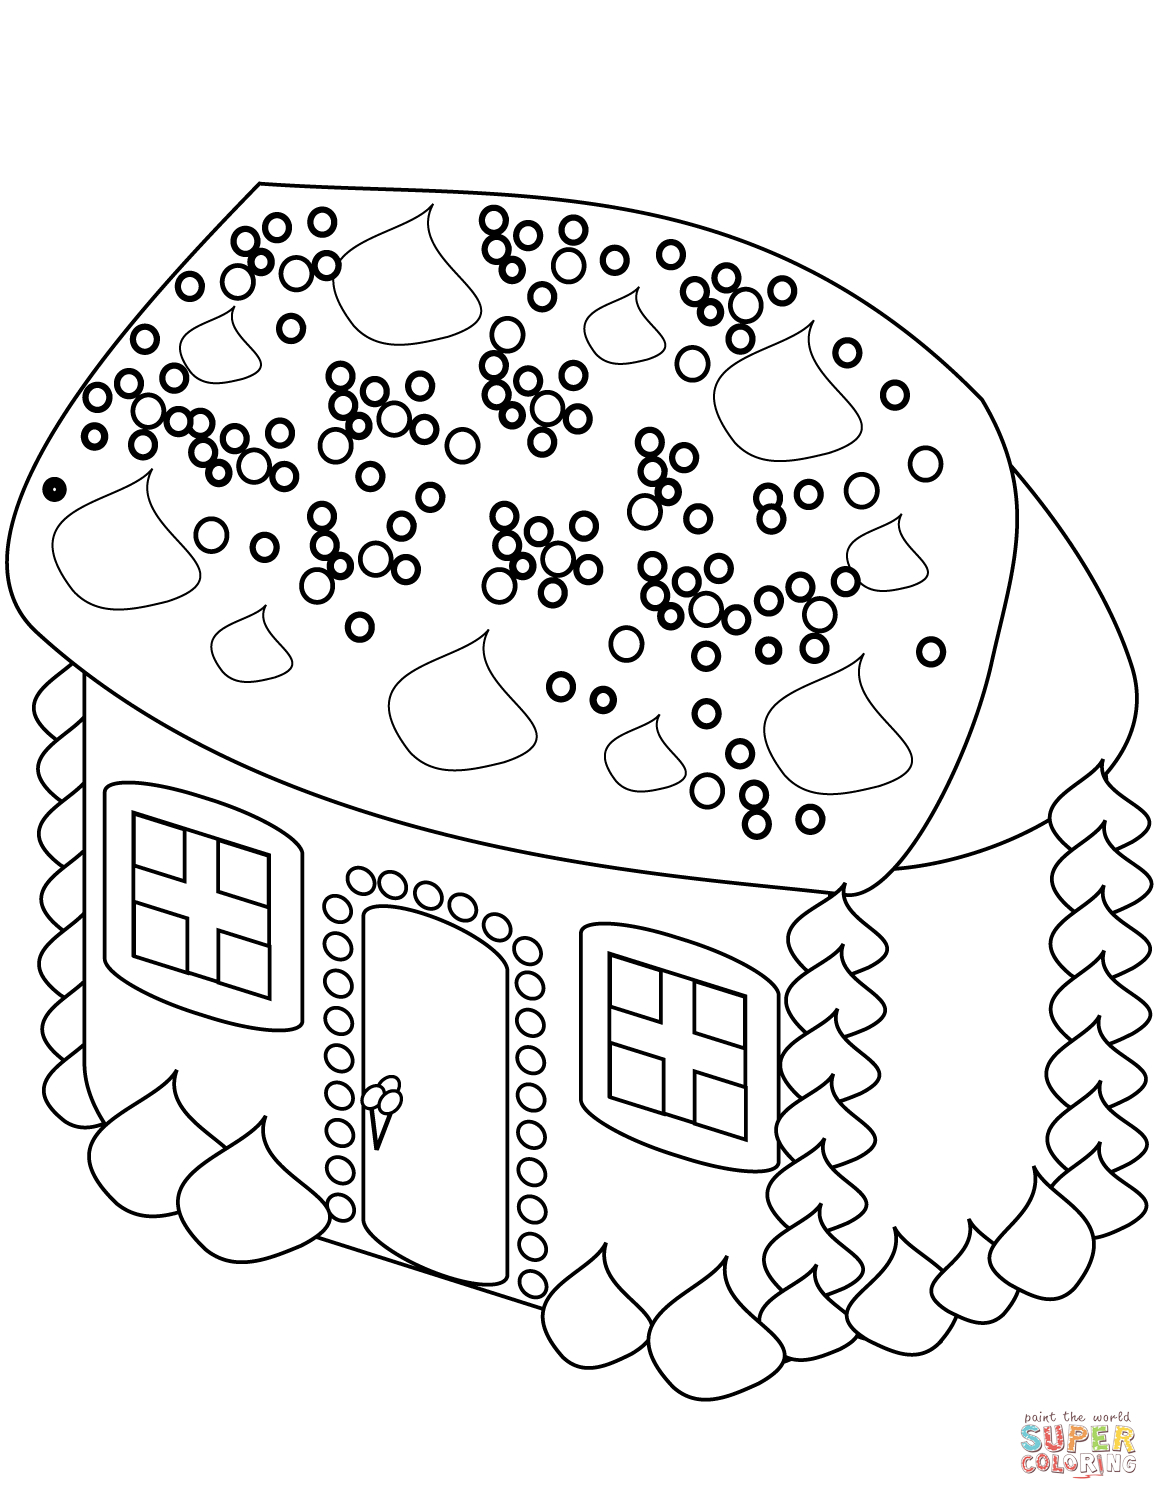 Gingerbread Coloring Pages Gingerbread House Coloring Page Free Printable Coloring Pages